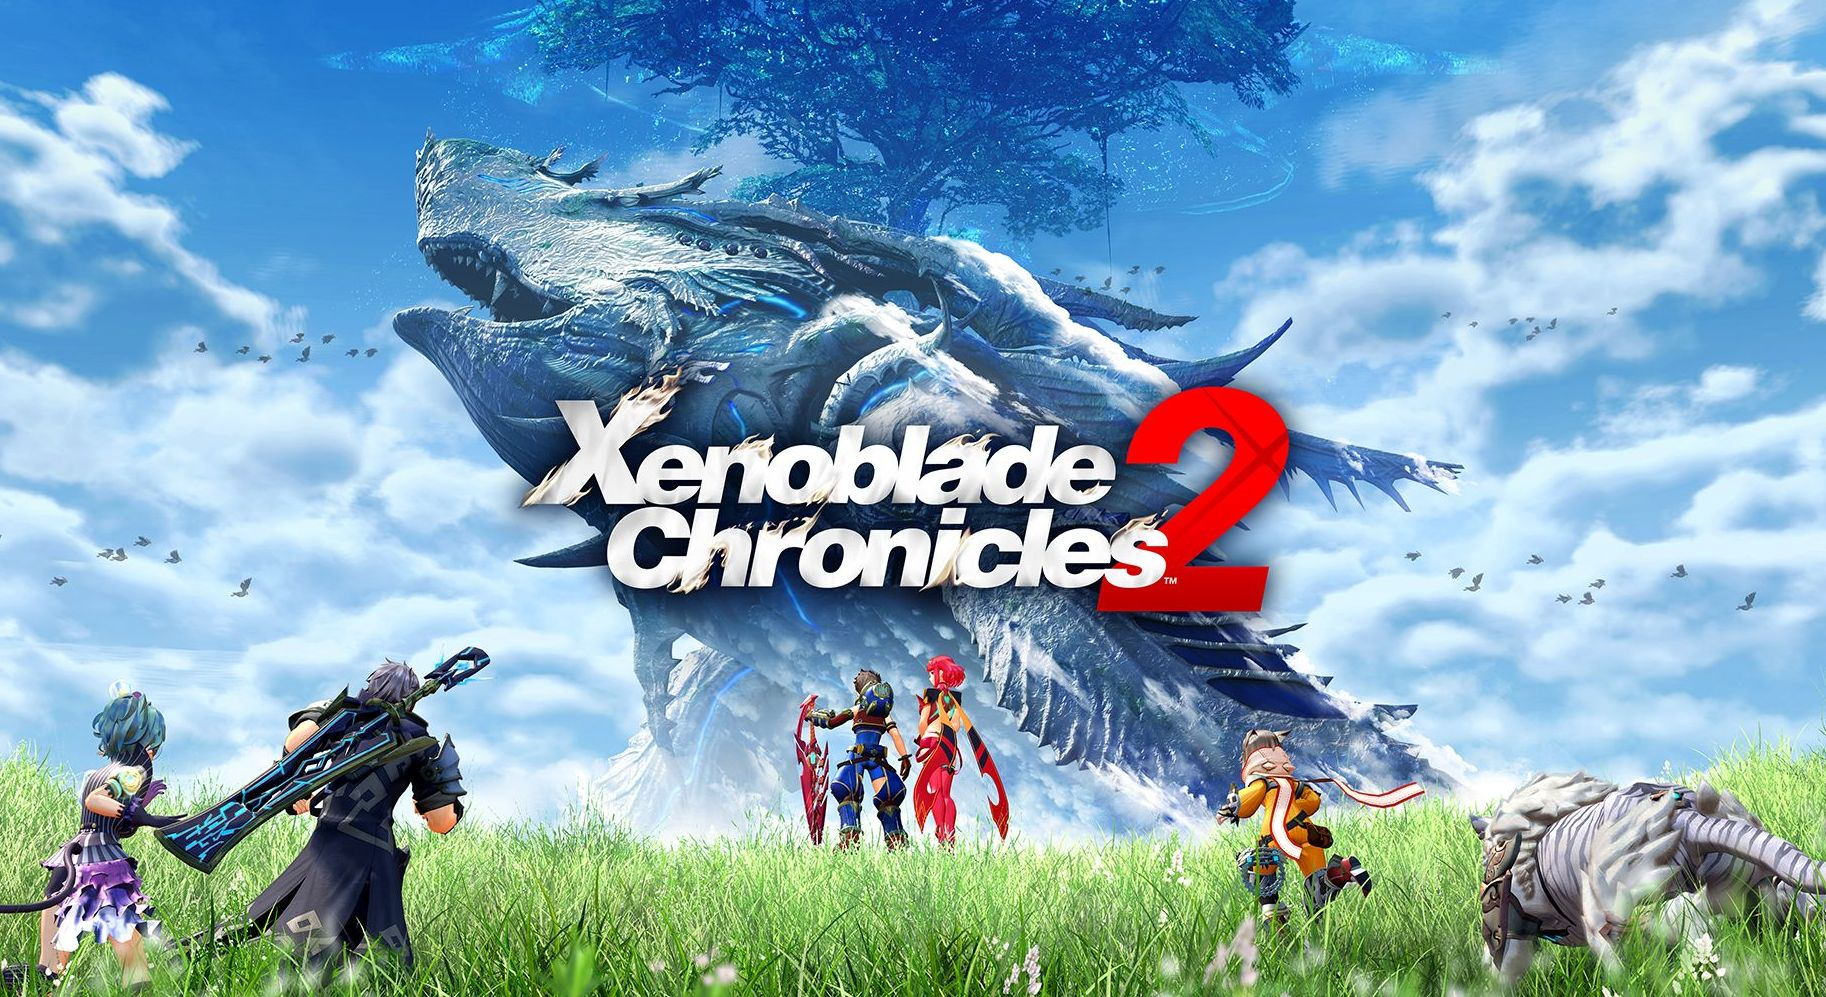 A review of the game Xenoblade Chronicles 2